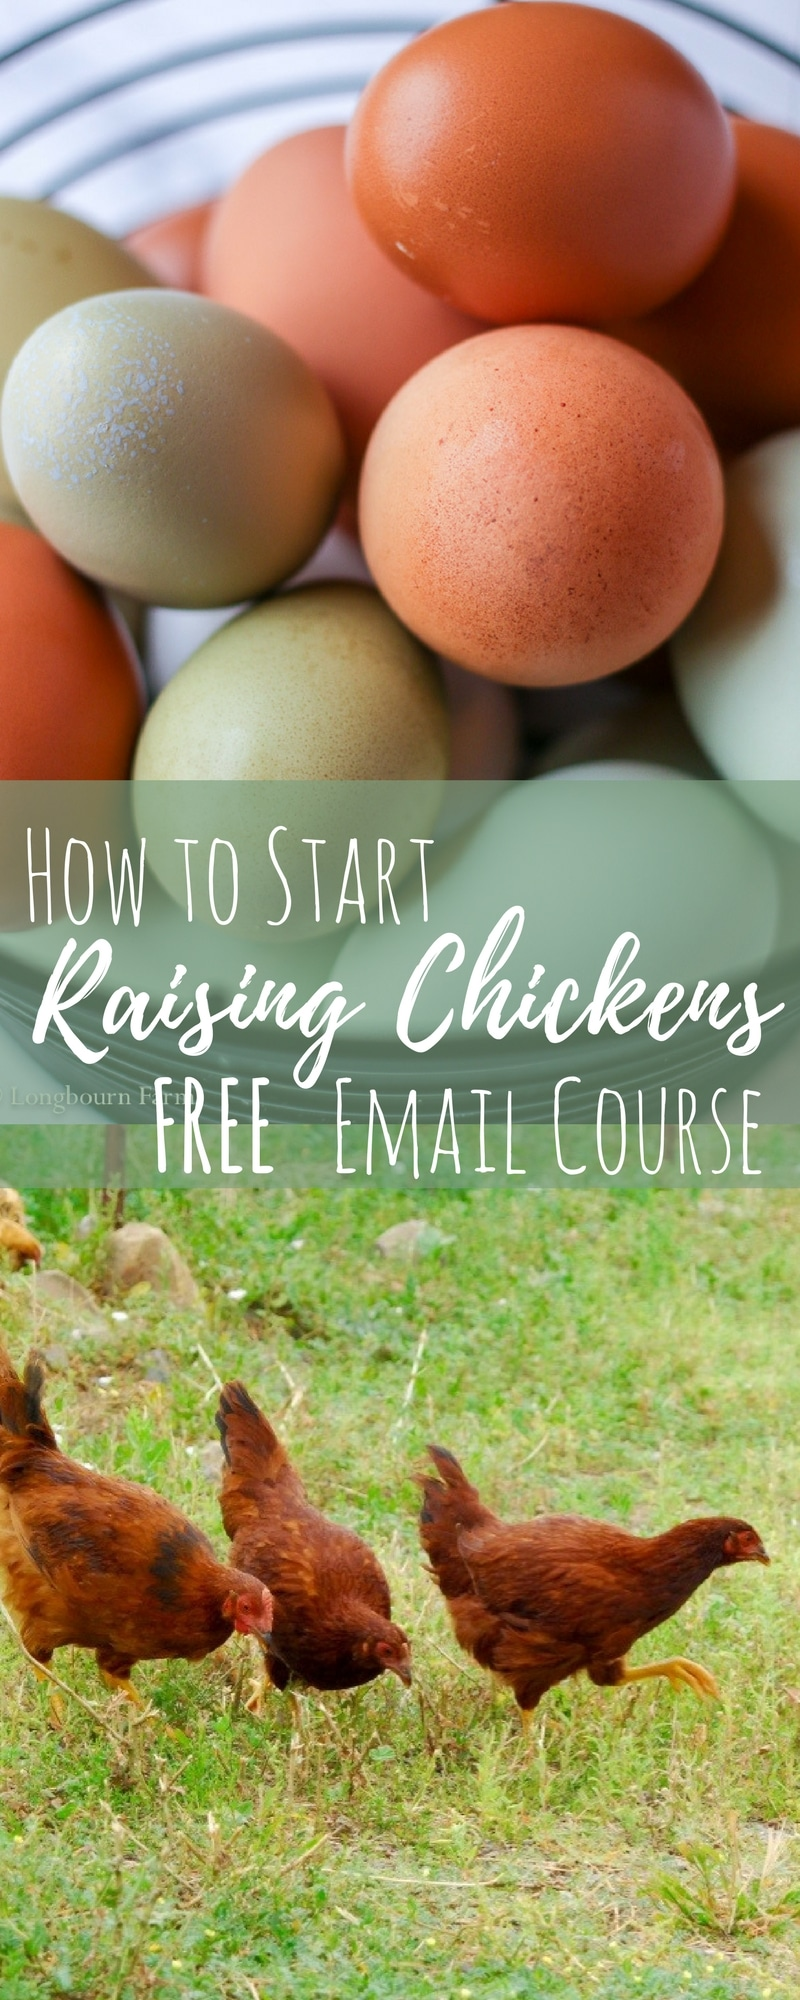 This 7-day email course is perfect for the beginning chicken keeper. I'll give you the most useful tips and tricks to get you started out right!